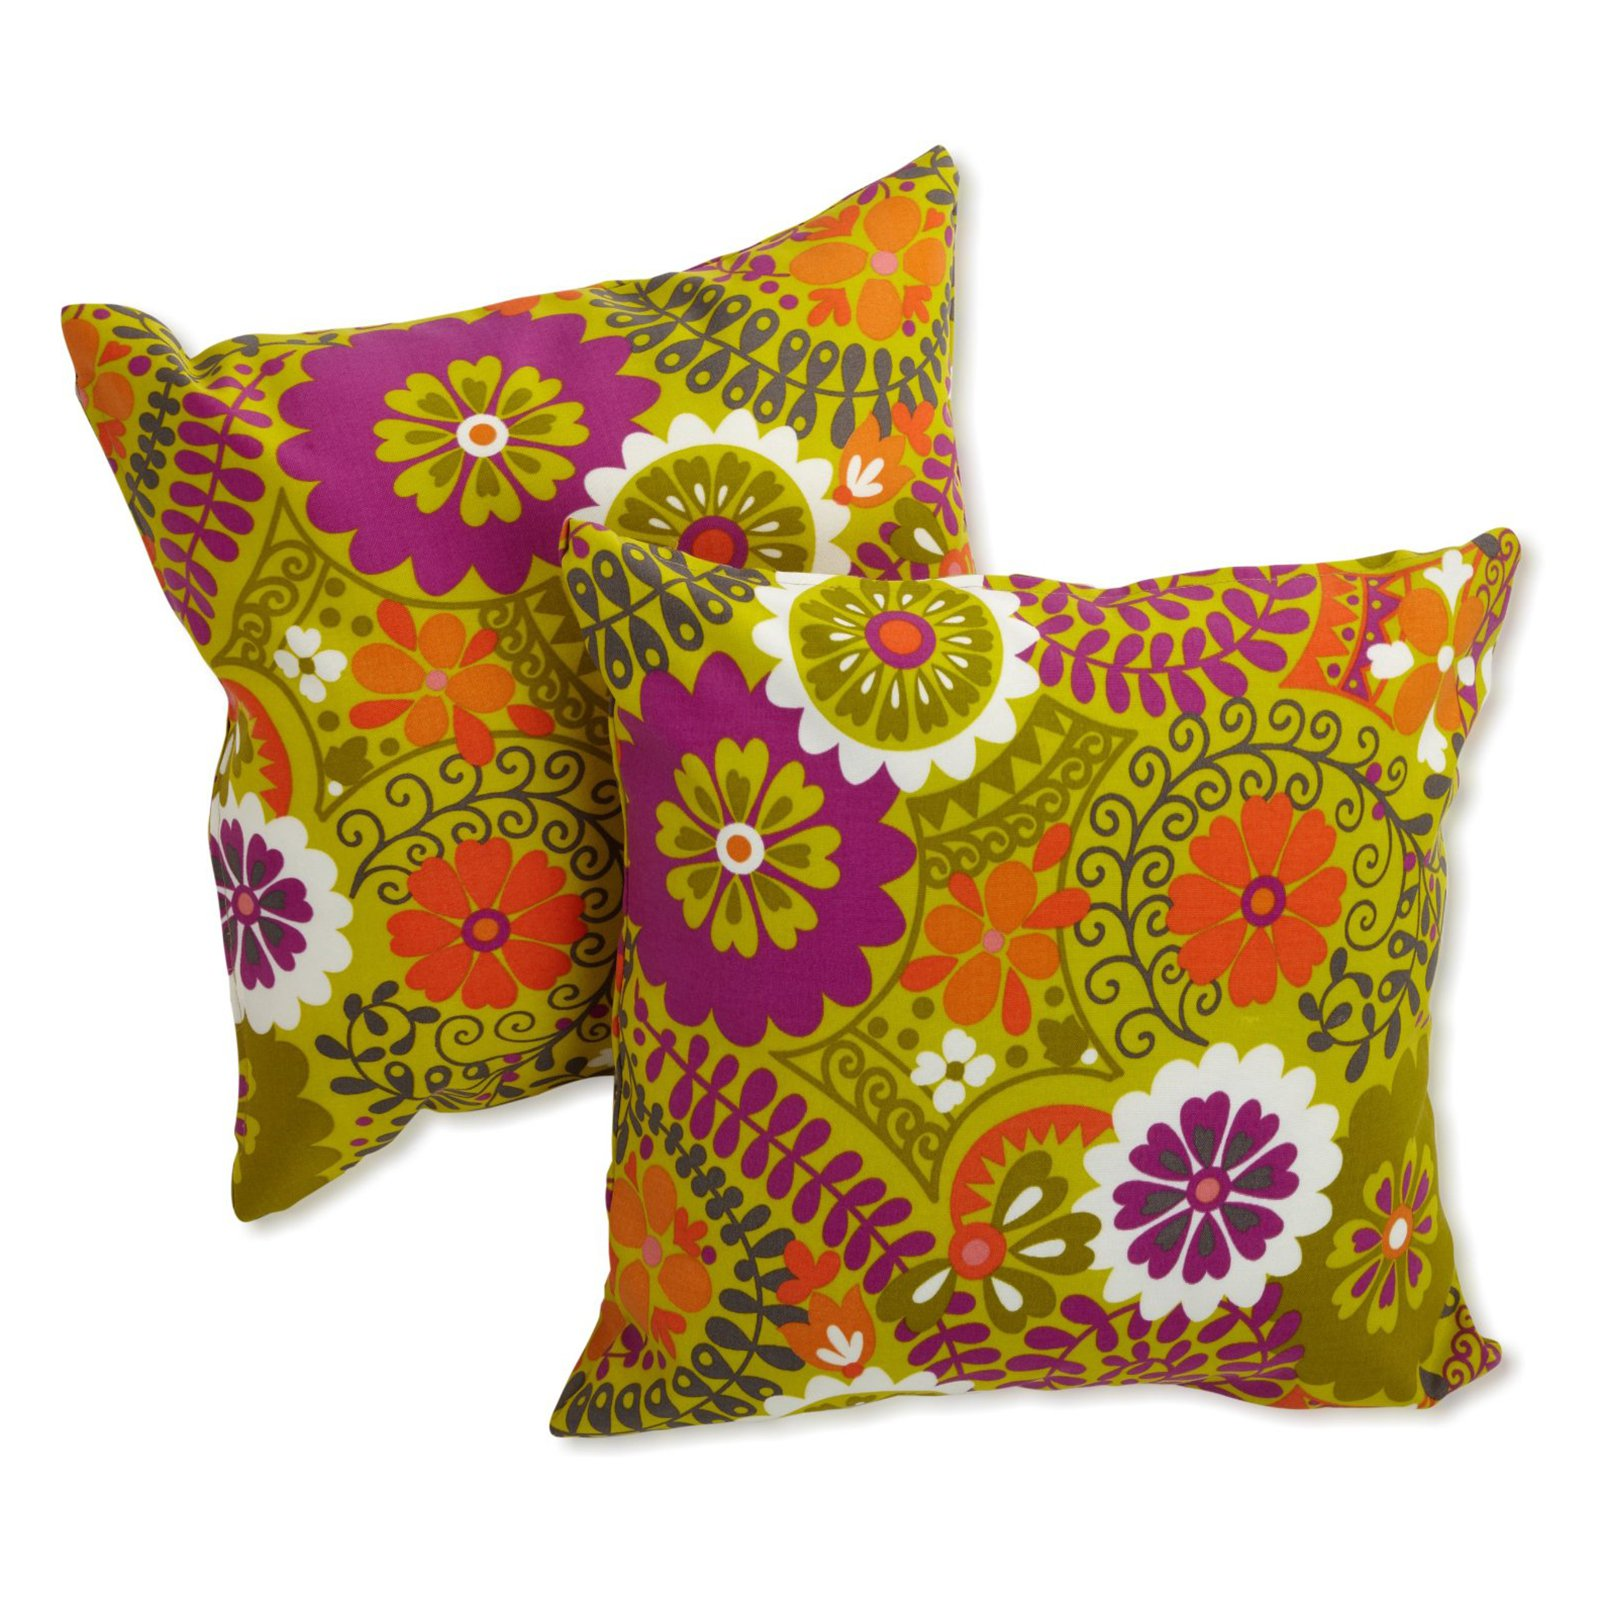 Blazing Needles 18 x 18 in. Patterned Outdoor Throw Pillows - Set of 2